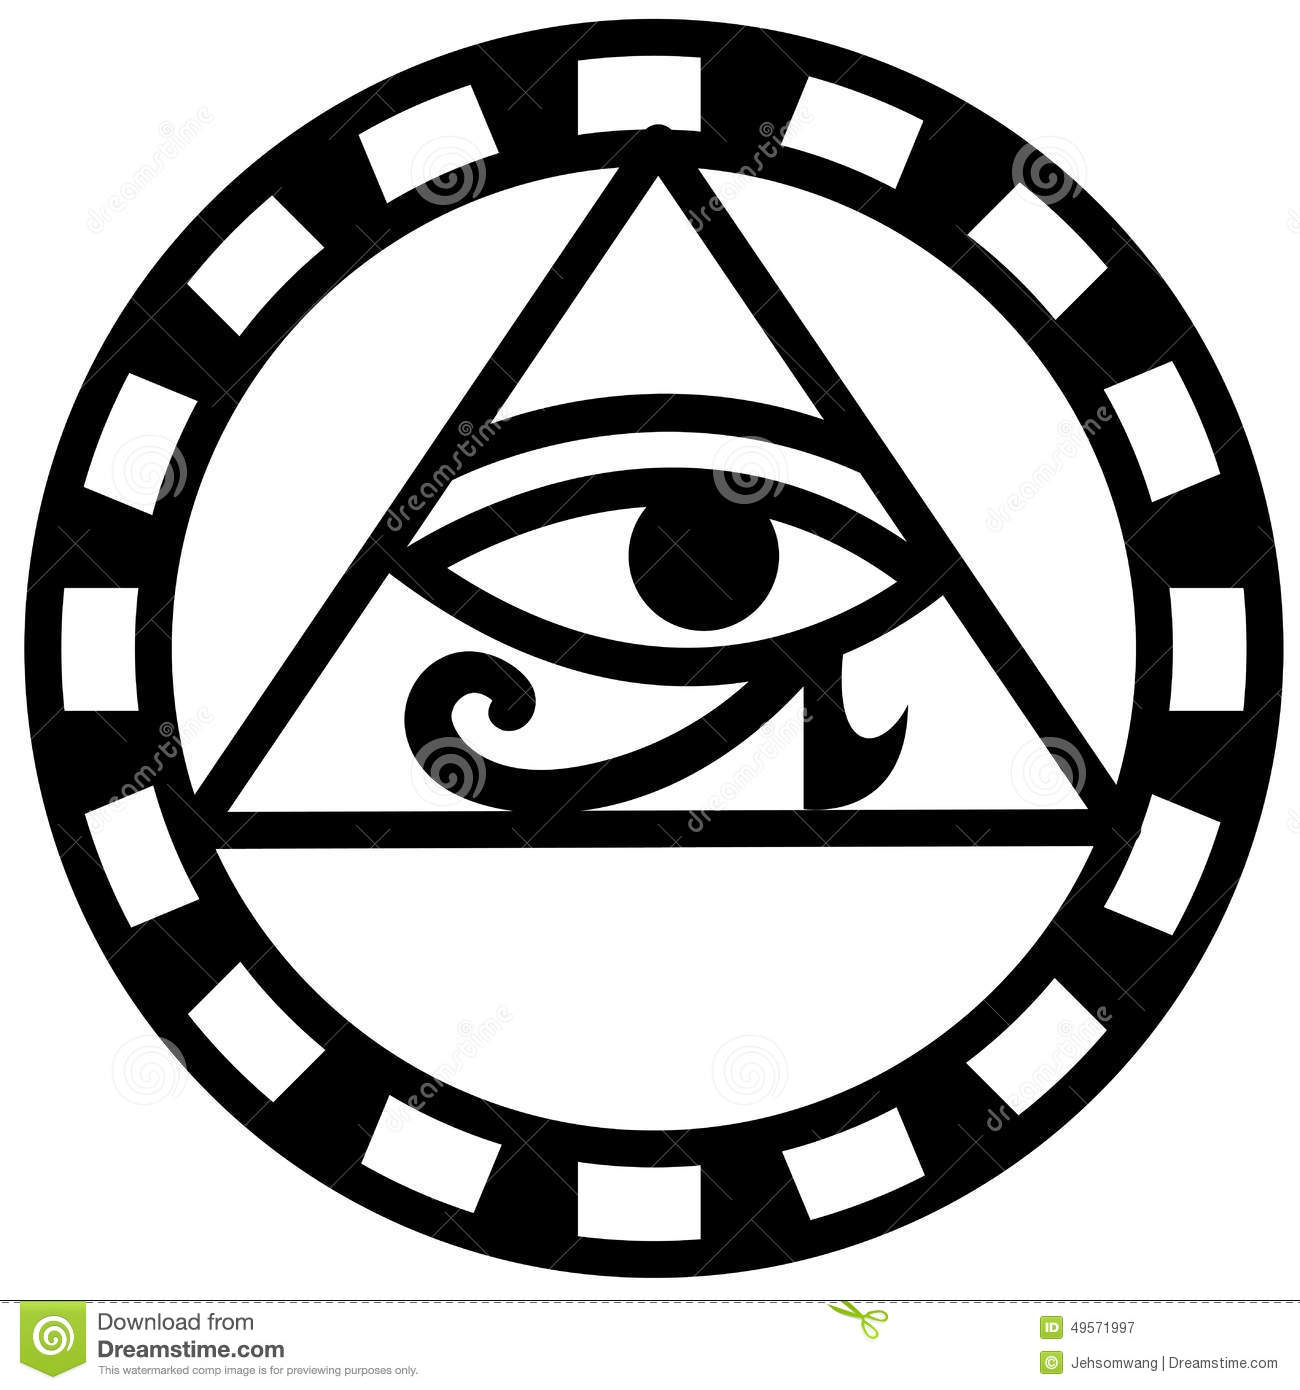 Horus stock illustrations 1137 horus stock illustrations egyptian eye of horus icon illustration of egyptian eye of horus icon royalty free stock biocorpaavc Images